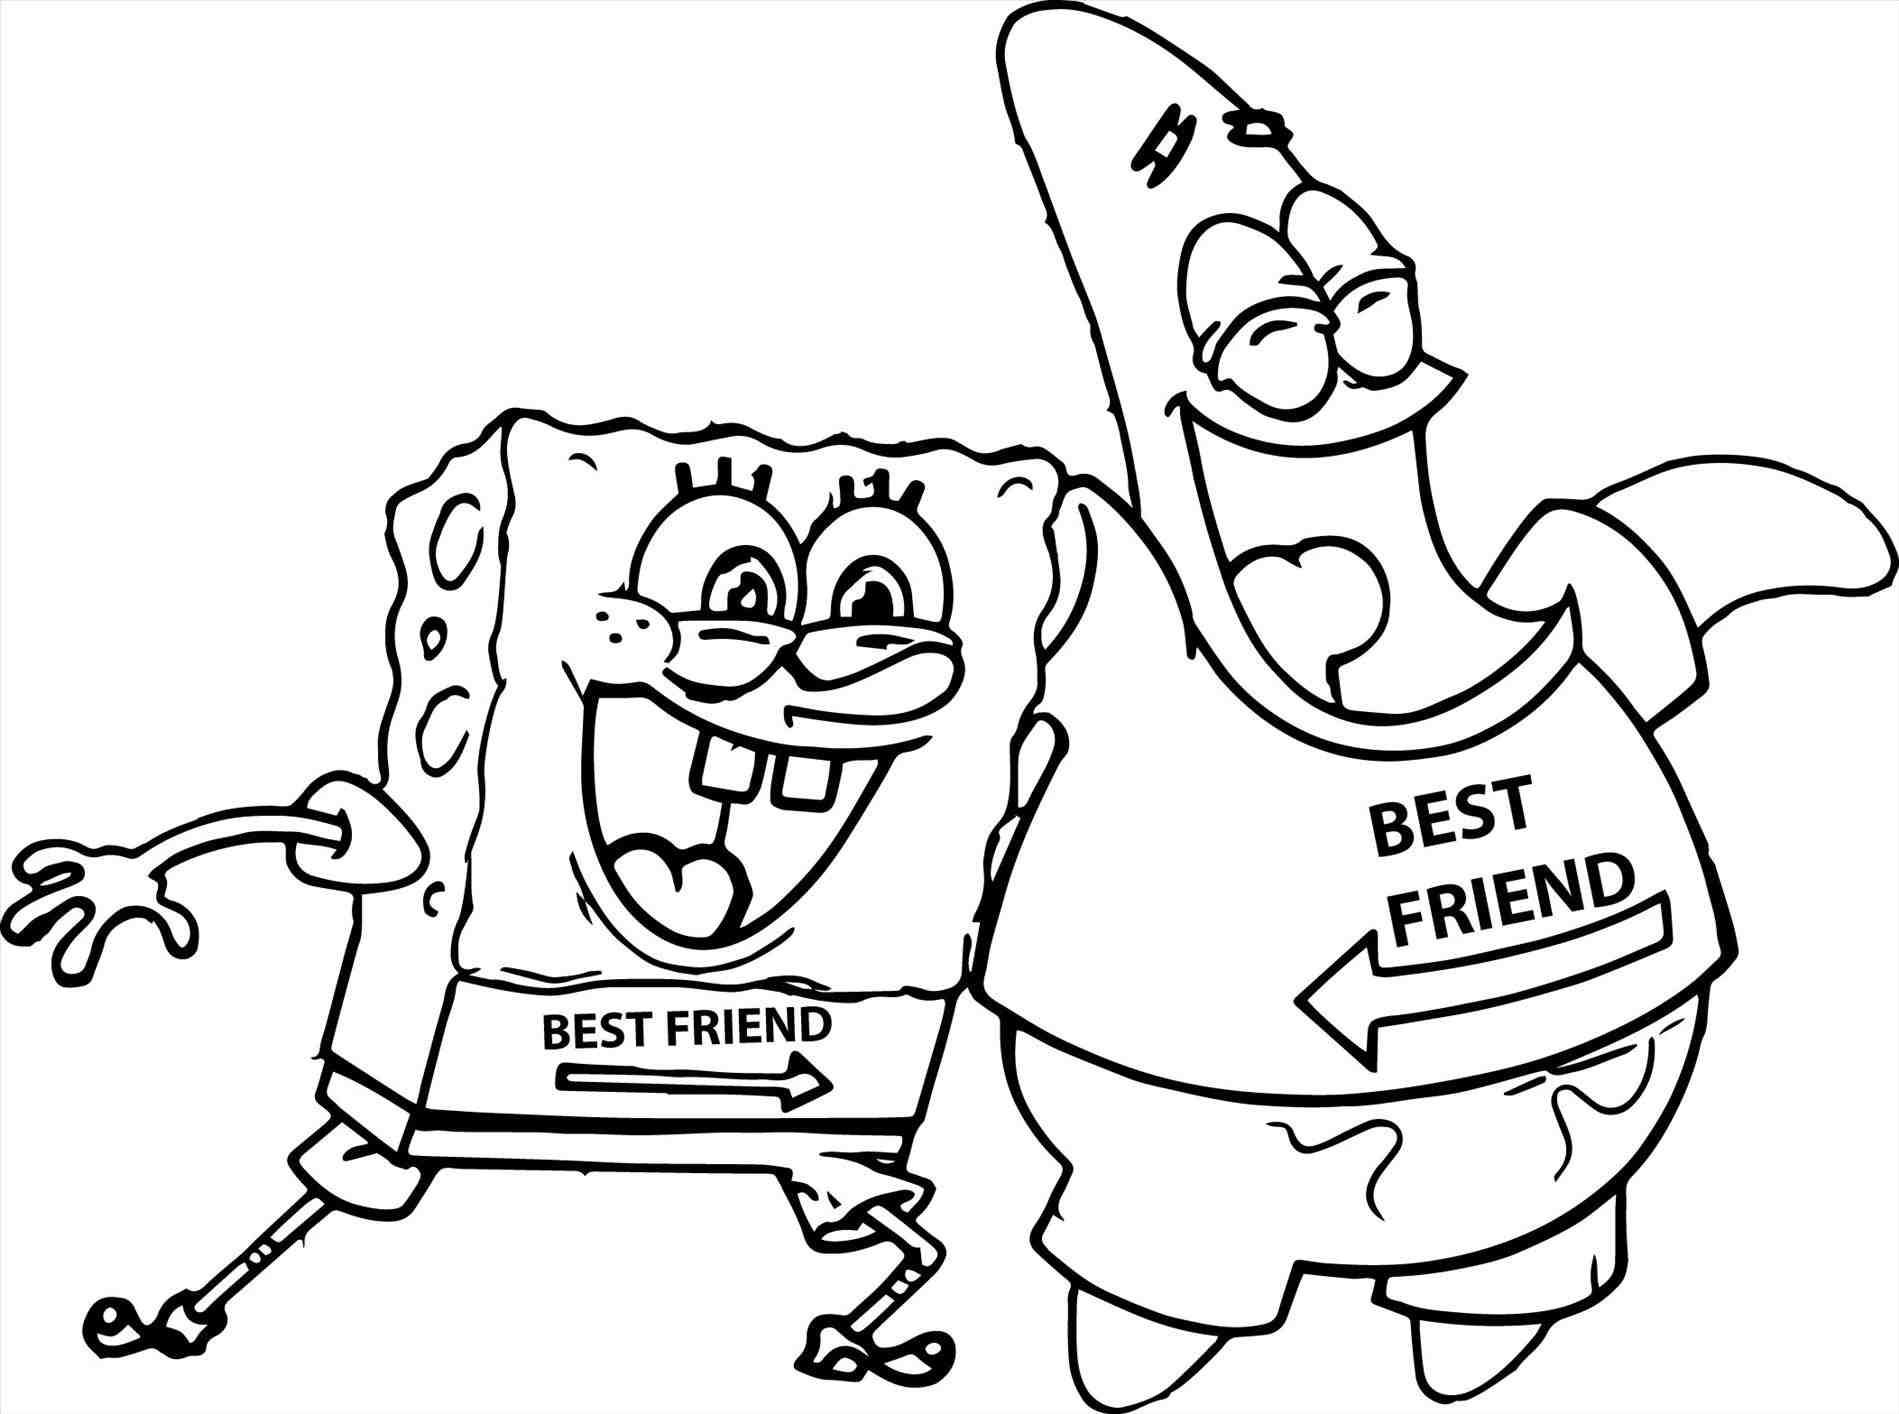 1899x1414 Ship Best Friend Drawings For Kids Coloring Page Free Draw